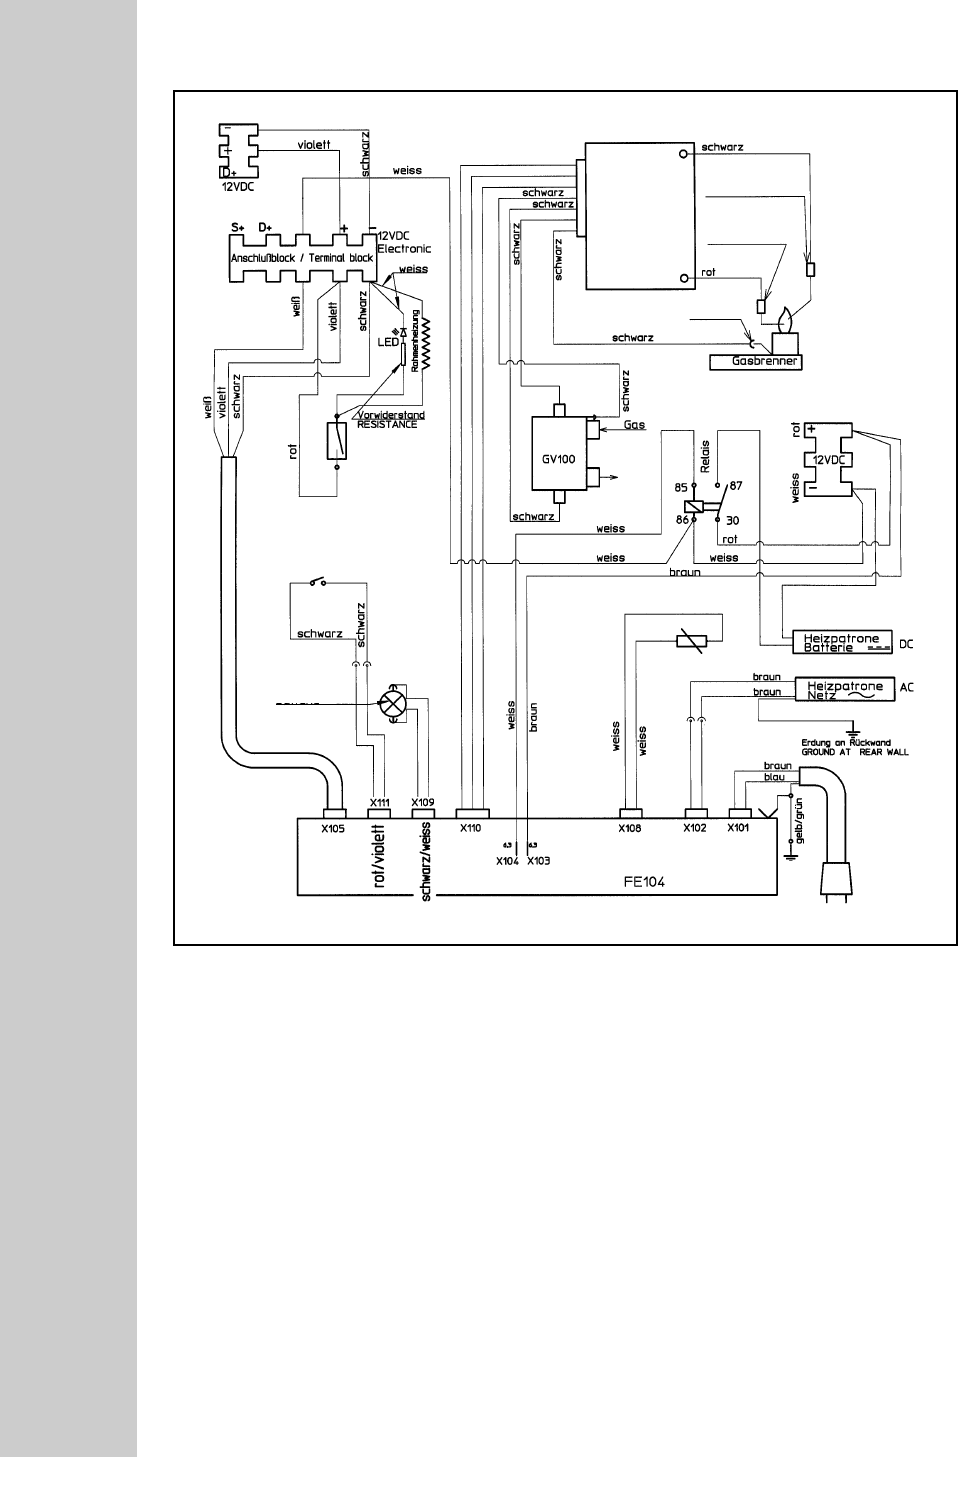 43fc0a23 351b 4018 b8ad f4061294773f bg1b page 27 of dometic refrigerator rm 7605 l user guide dometic refrigerator wiring diagram at bayanpartner.co